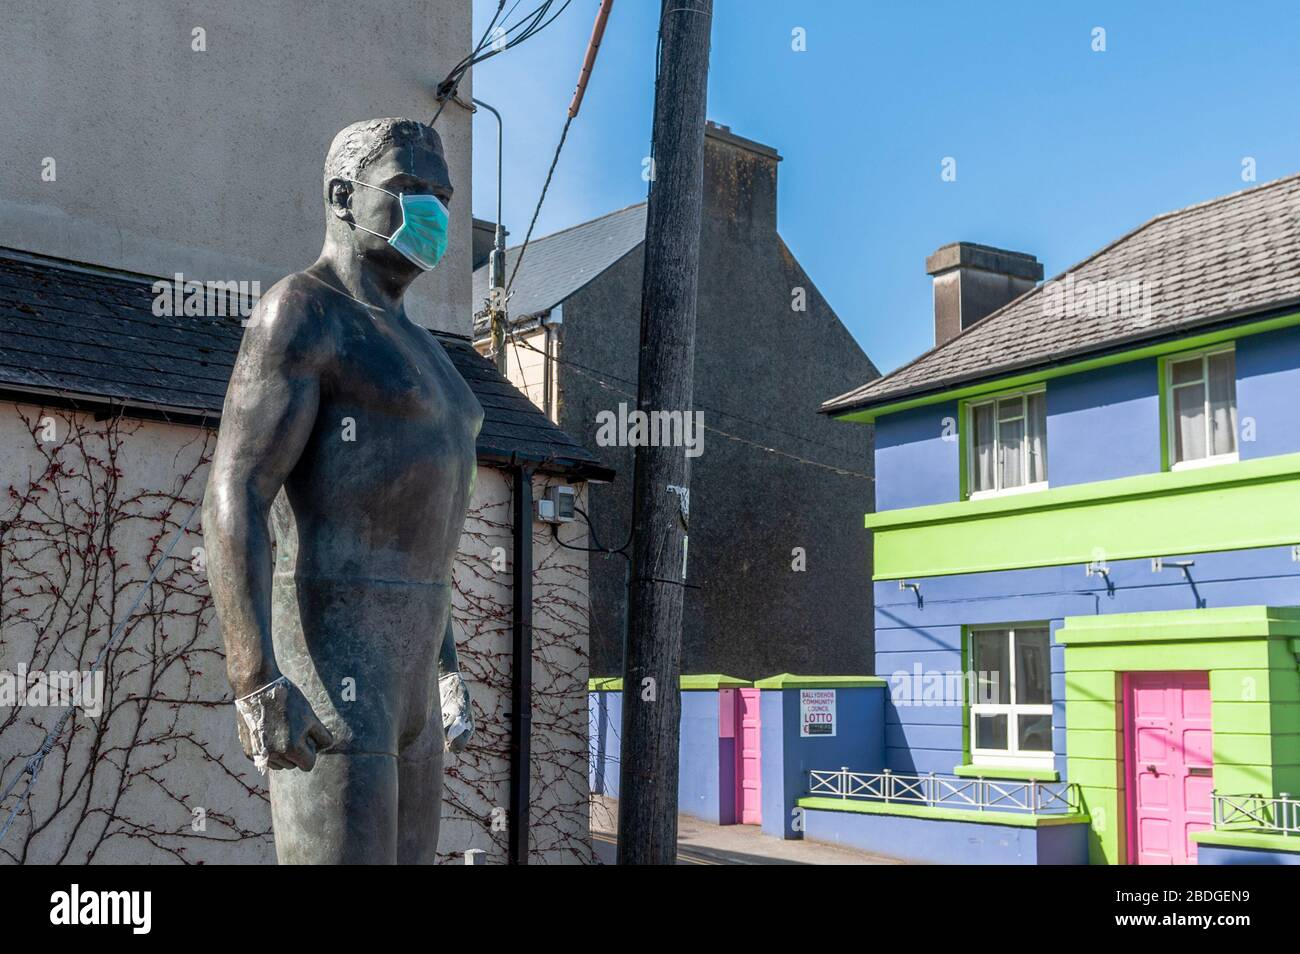 balydehob-west-cork-ireland-8th-apr-2020-the-world-famous-danno-omahony-statue-in-ballydehob-was-adorned-with-a-face-mask-today-possibly-to-protect-it-from-covid-19-credit-andy-gibsonalamy-live-news-2BDGEN9.jpg